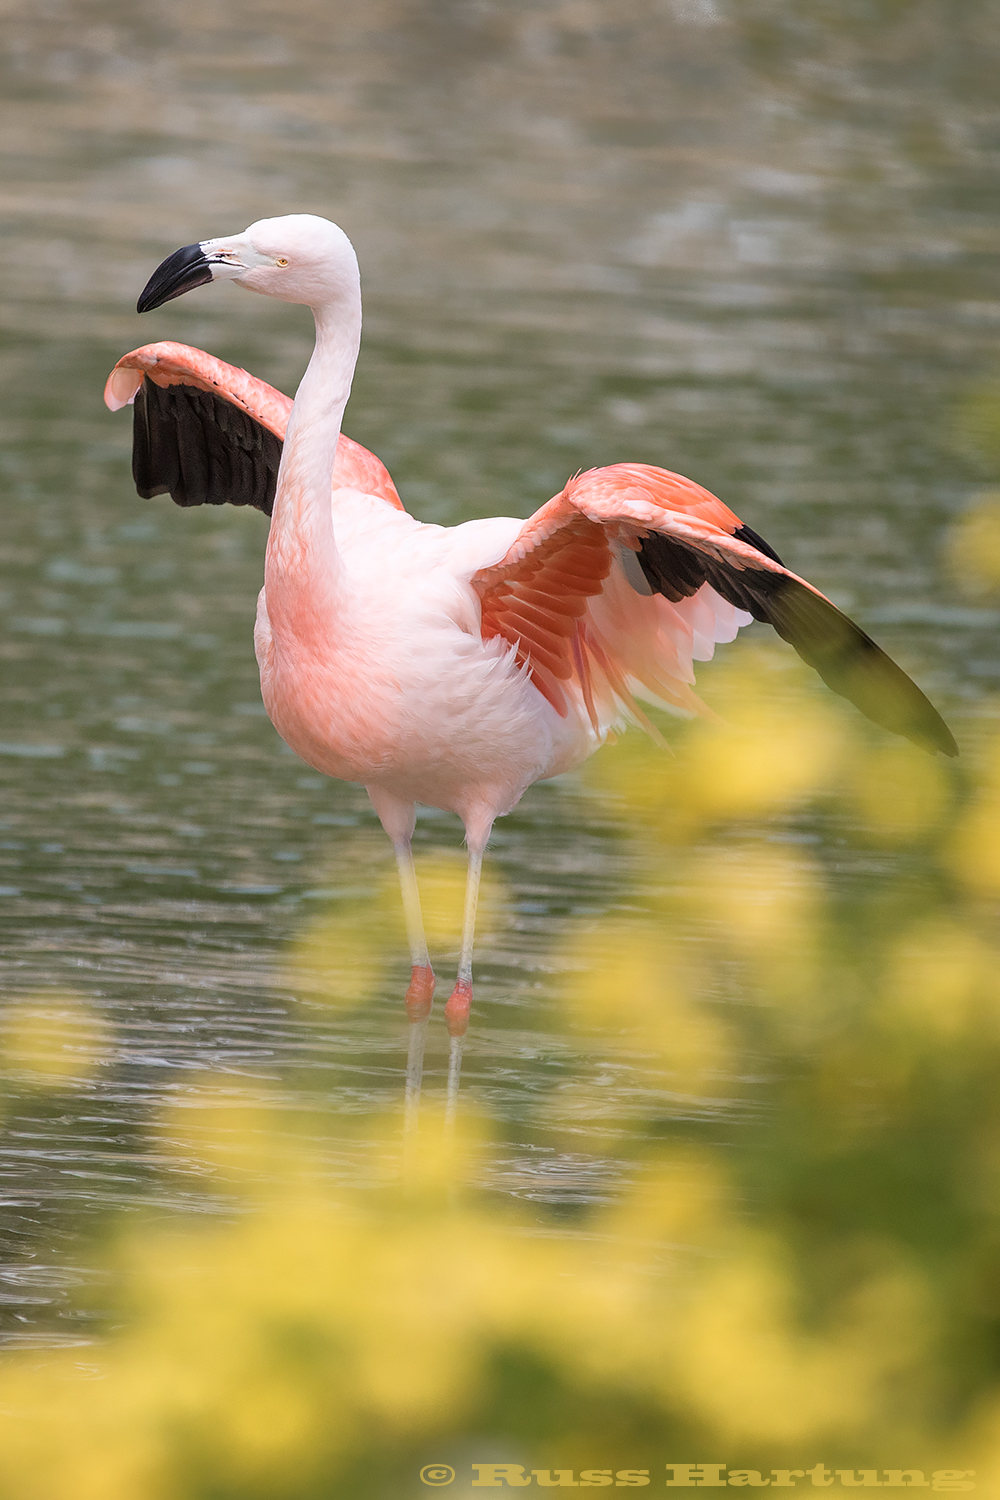 Flamingo stretching it's wings.